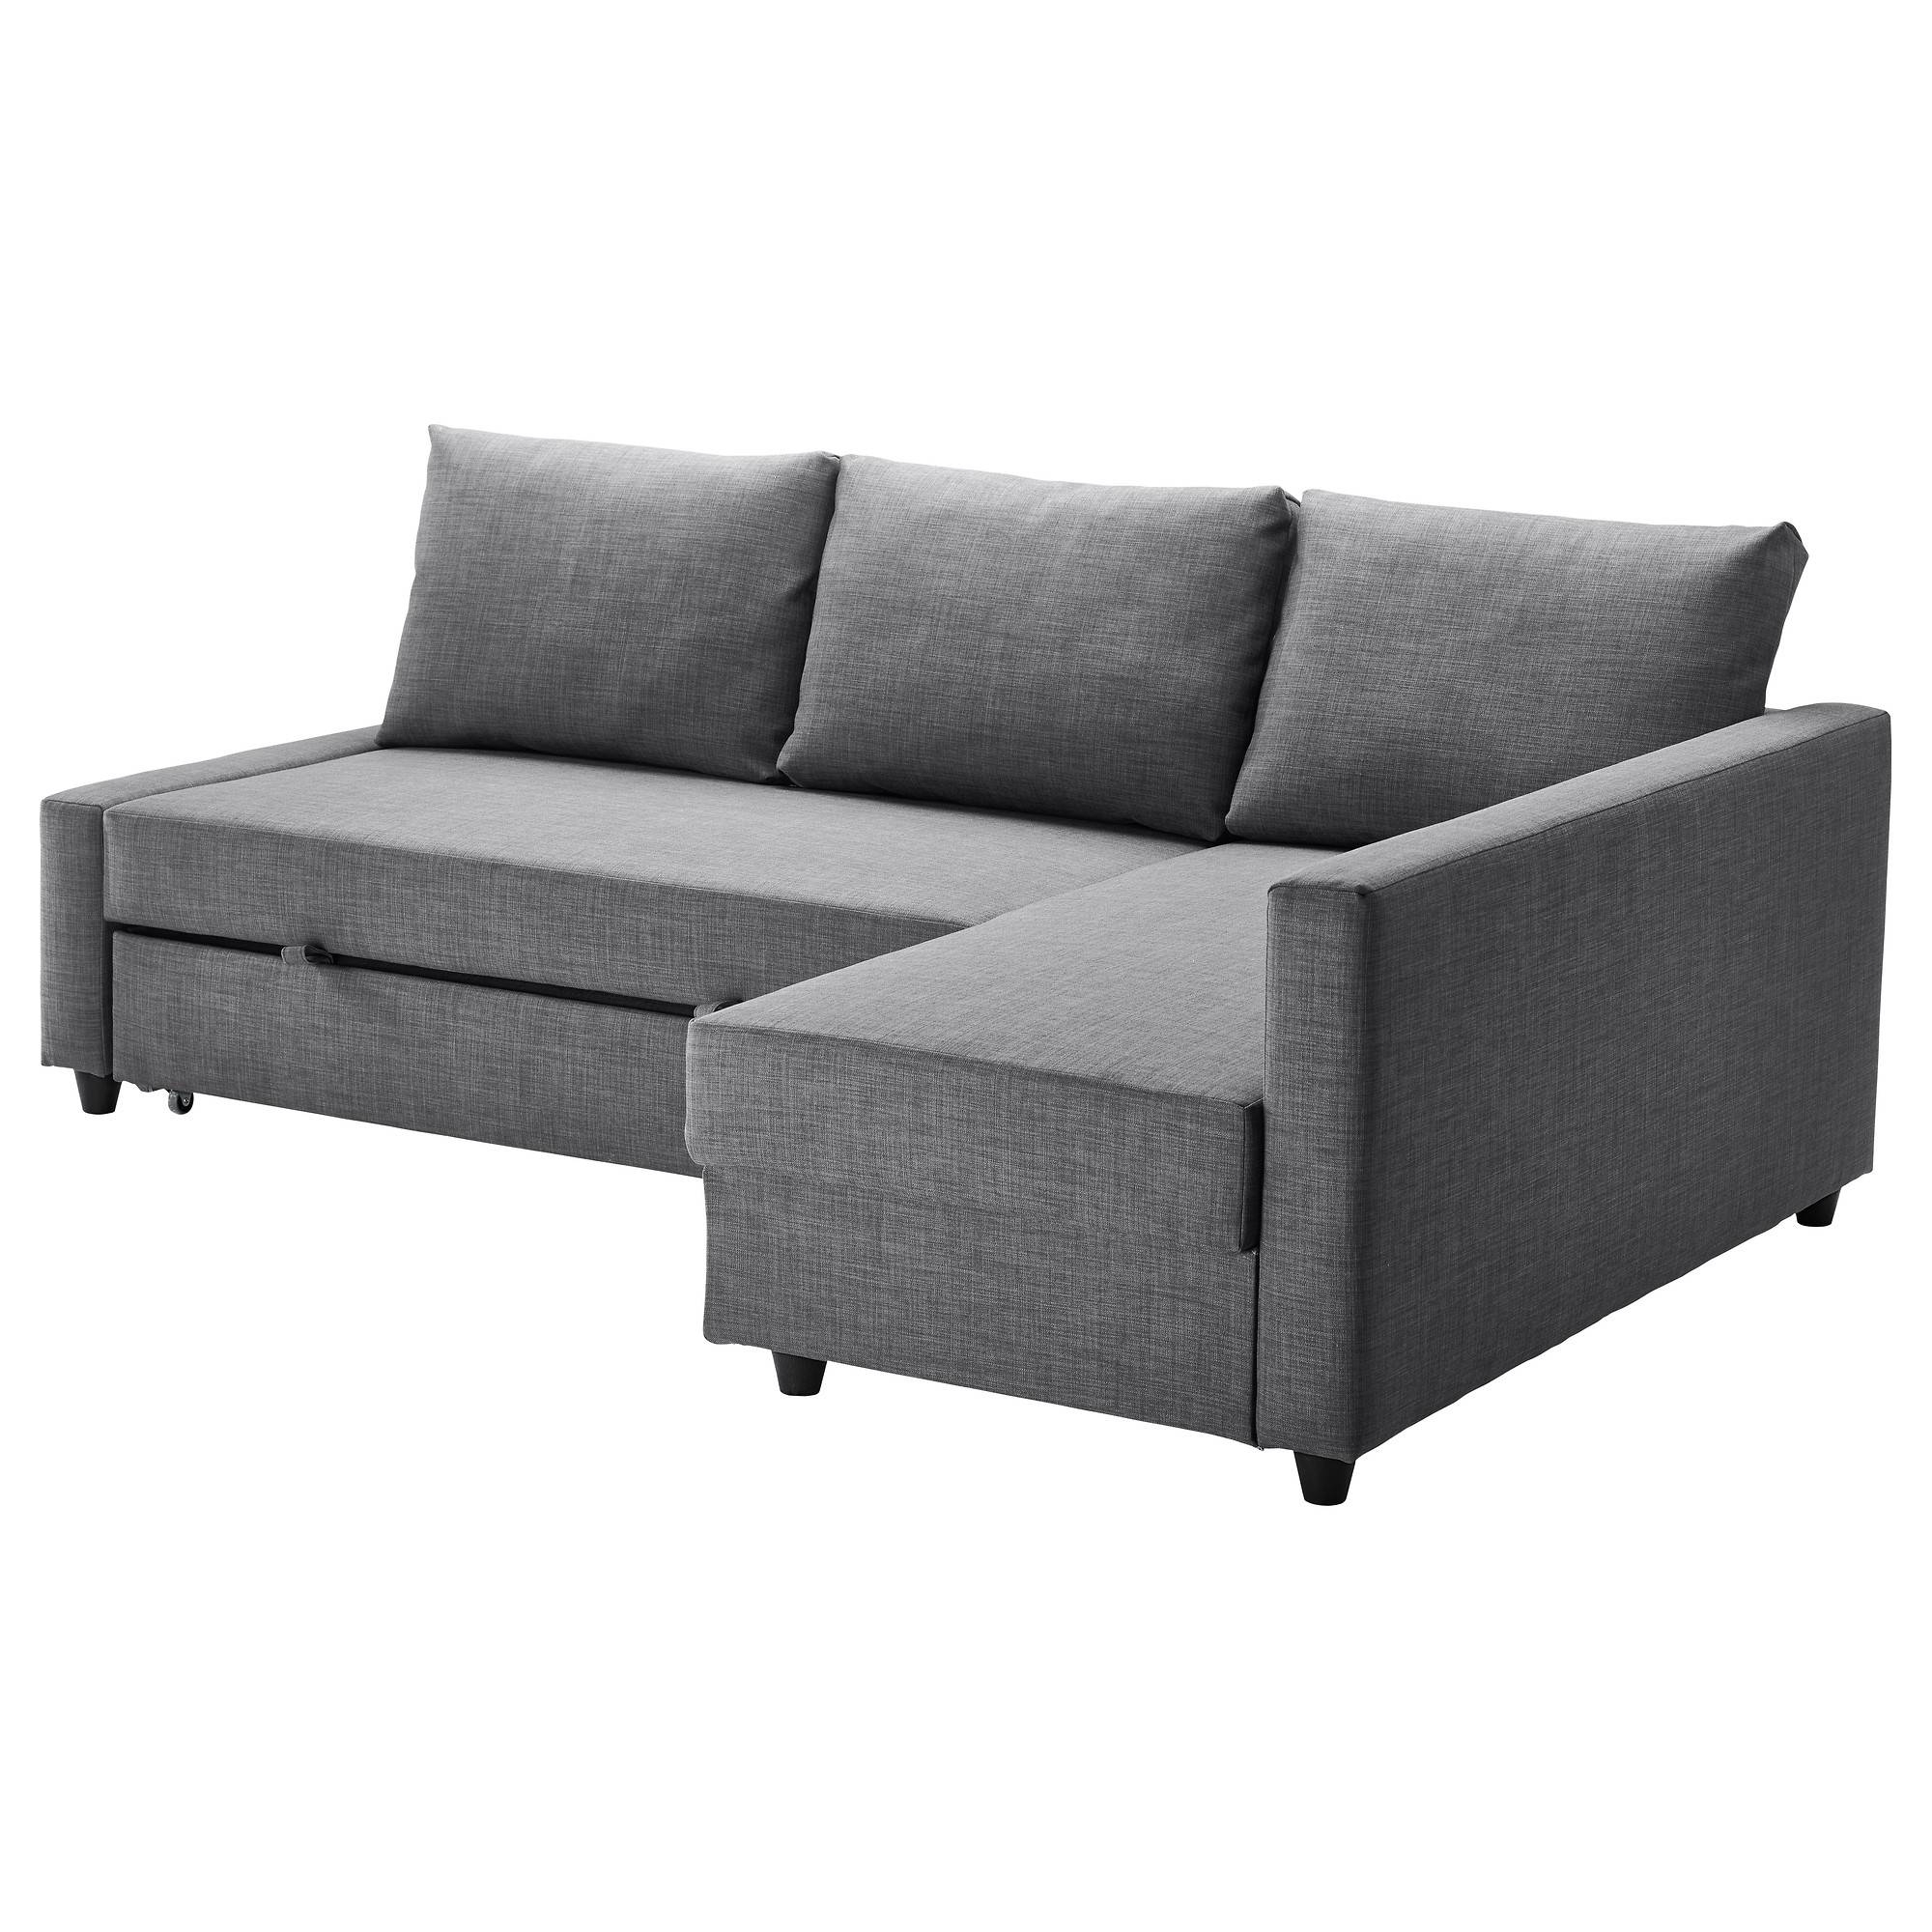 Friheten Corner Sofa-Bed With Storage Skiftebo Dark Grey - Ikea within Corner Couch Bed (Image 20 of 30)